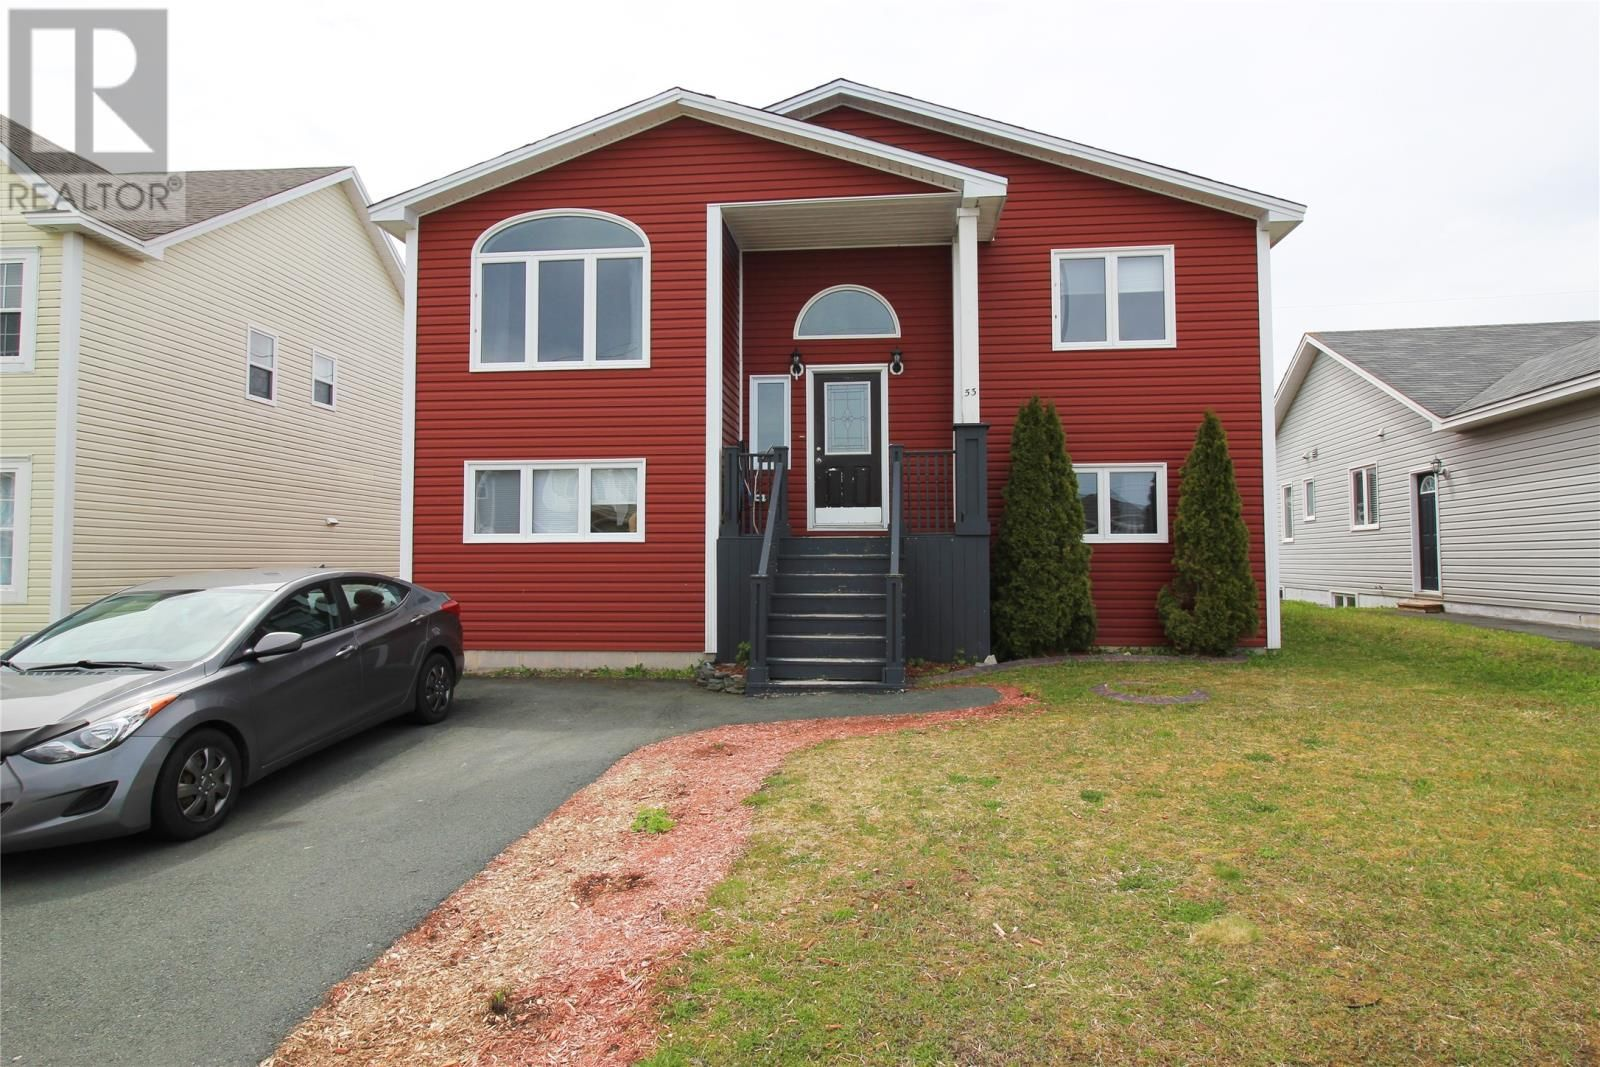 Main Photo: 53 Palm Drive in St. Johns: House for sale : MLS®# 1231046